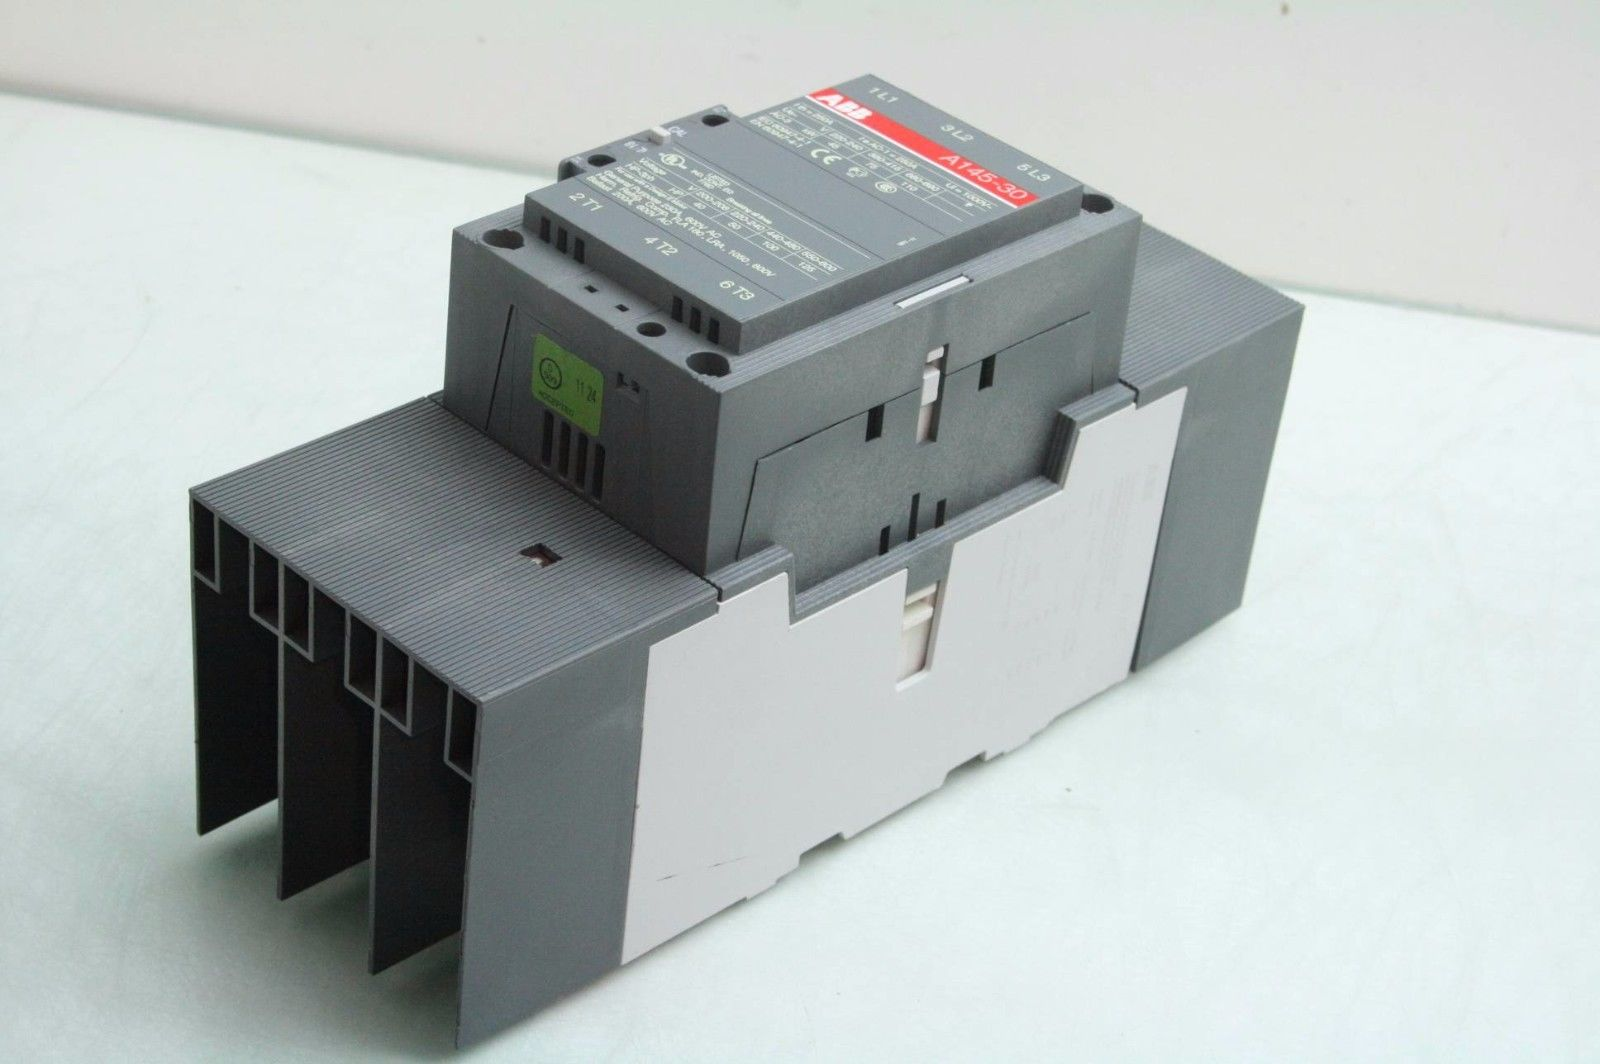 ABB A145-30 Contactor 120VAC Coil 250A / A14530 - Used on